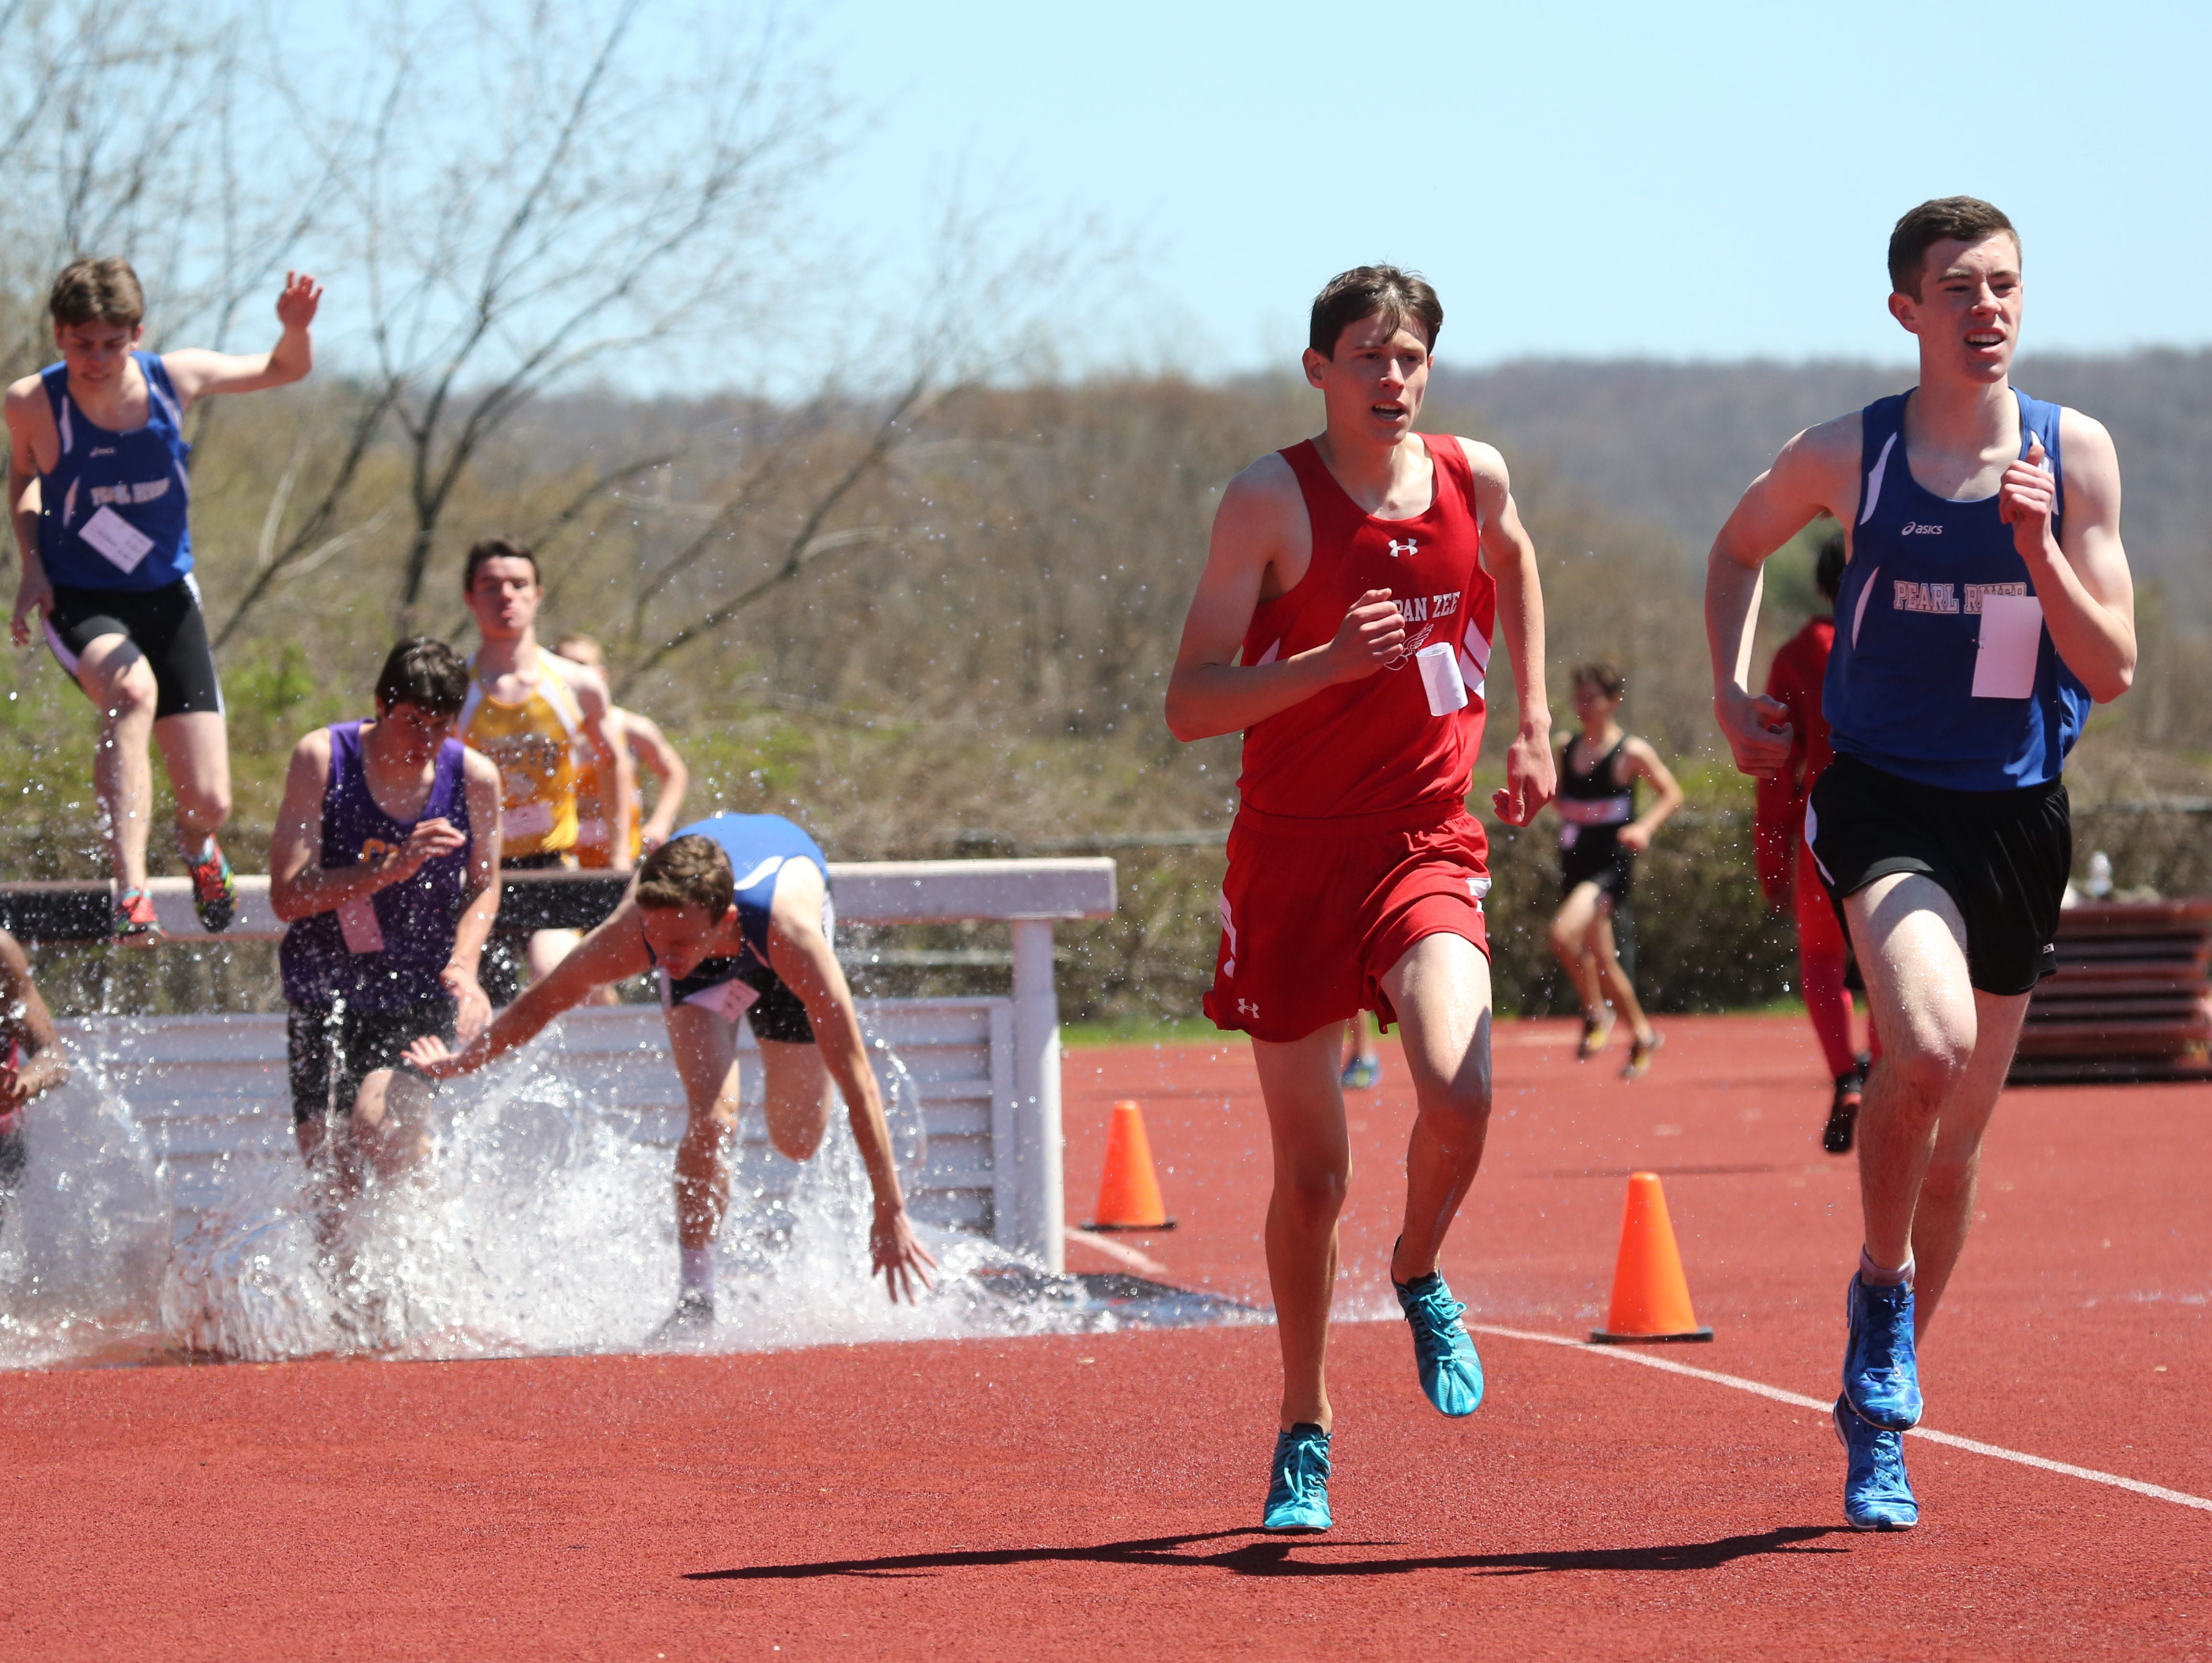 Tappan Zee's Brendan Hehir, second from right, competes in the boys 2000 meter steeplechase during the Clarkstown South Gold Rush Track Invitational at the school in West Nyack, April 25, 2015. Hehir won the race.